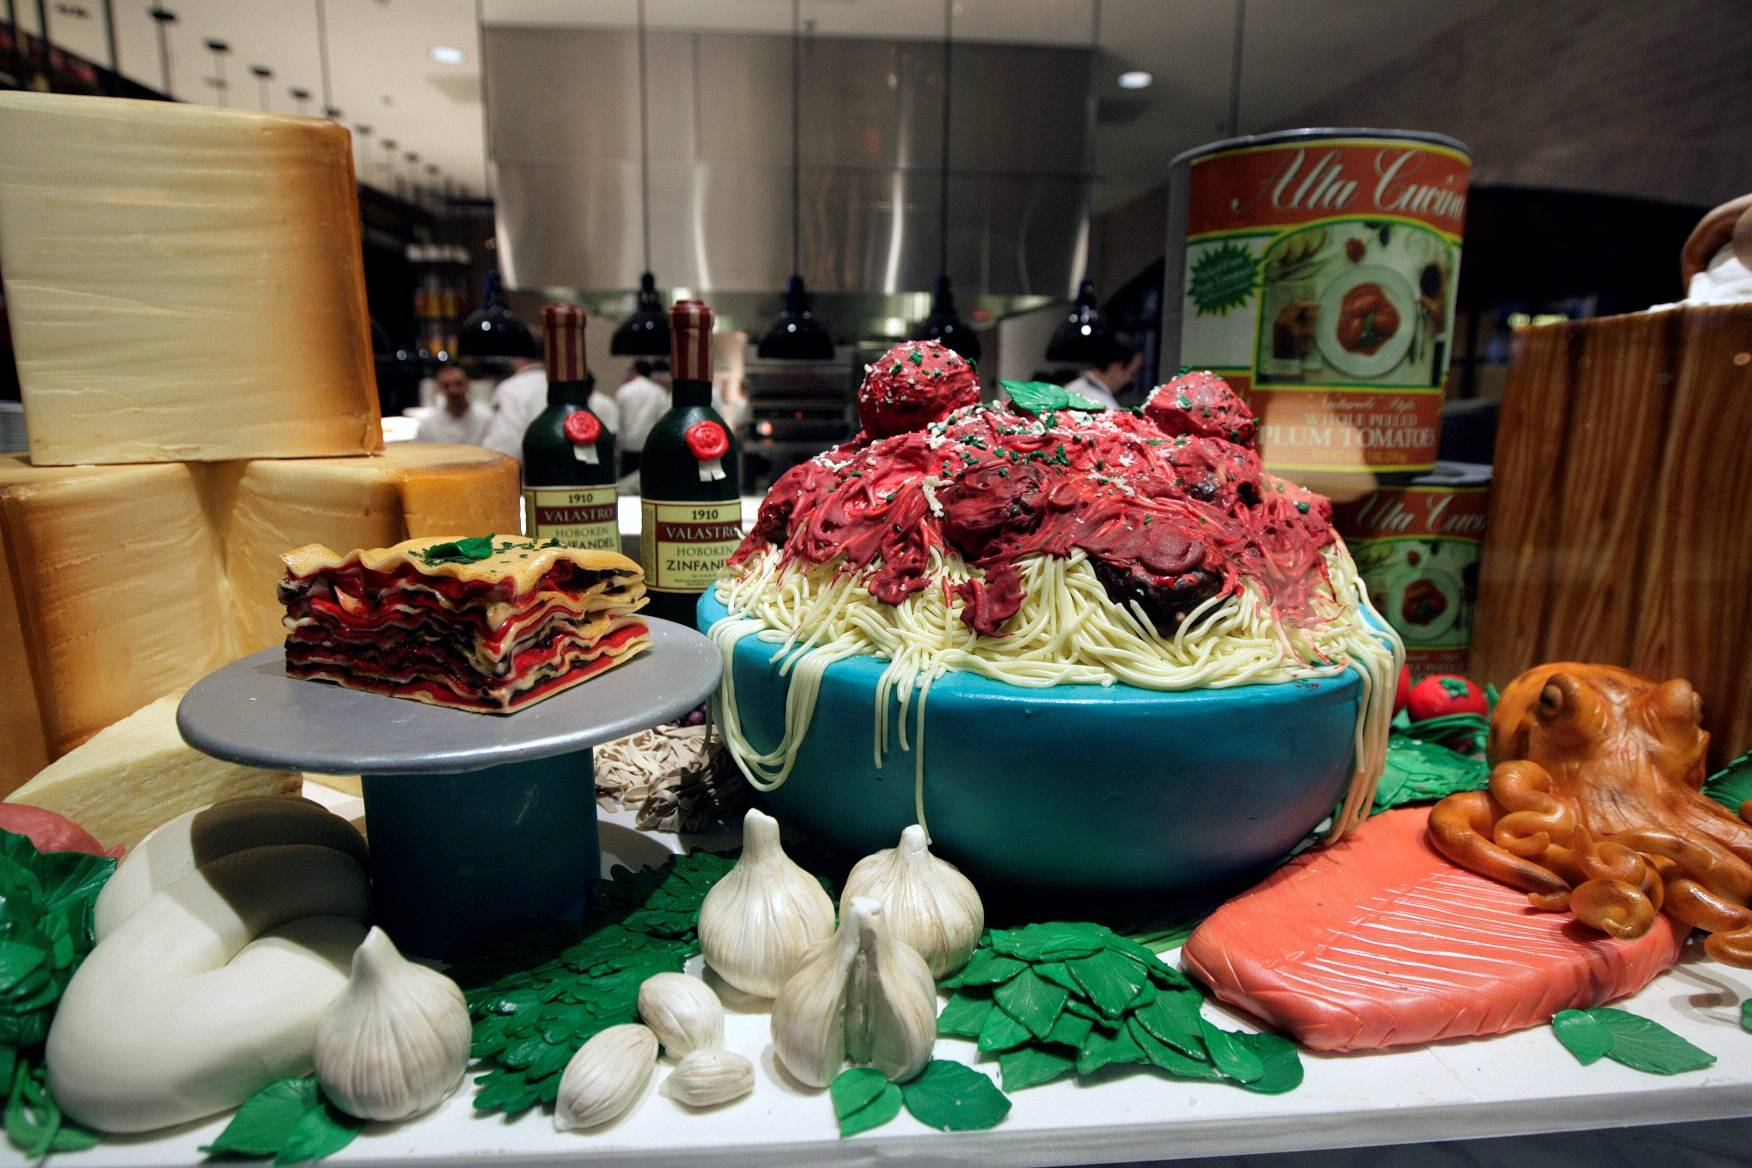 A display made of cake and chocolate shows off the Cake Boss' skills